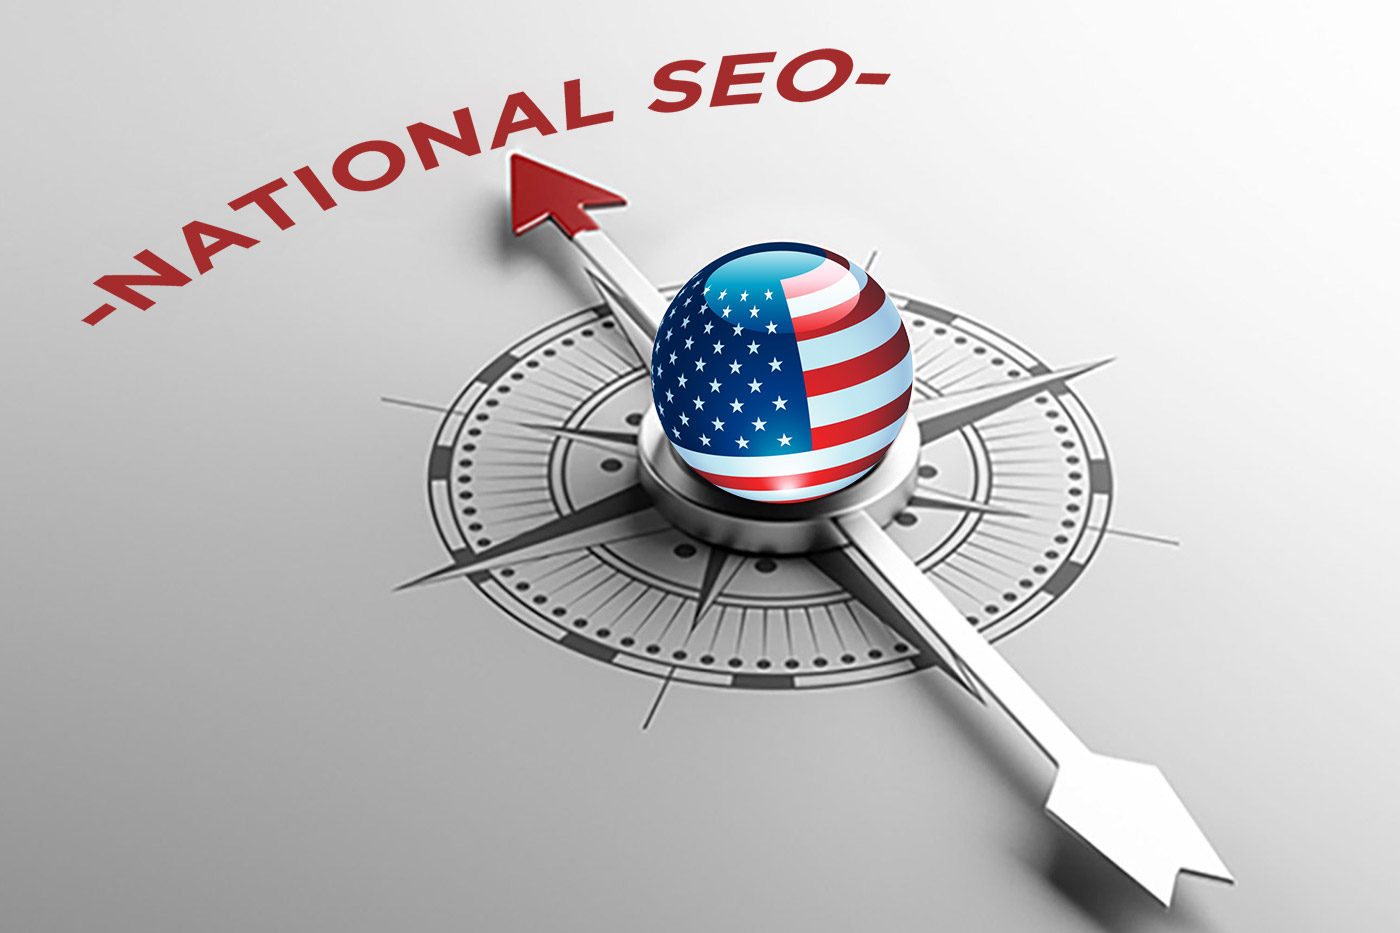 national-seo